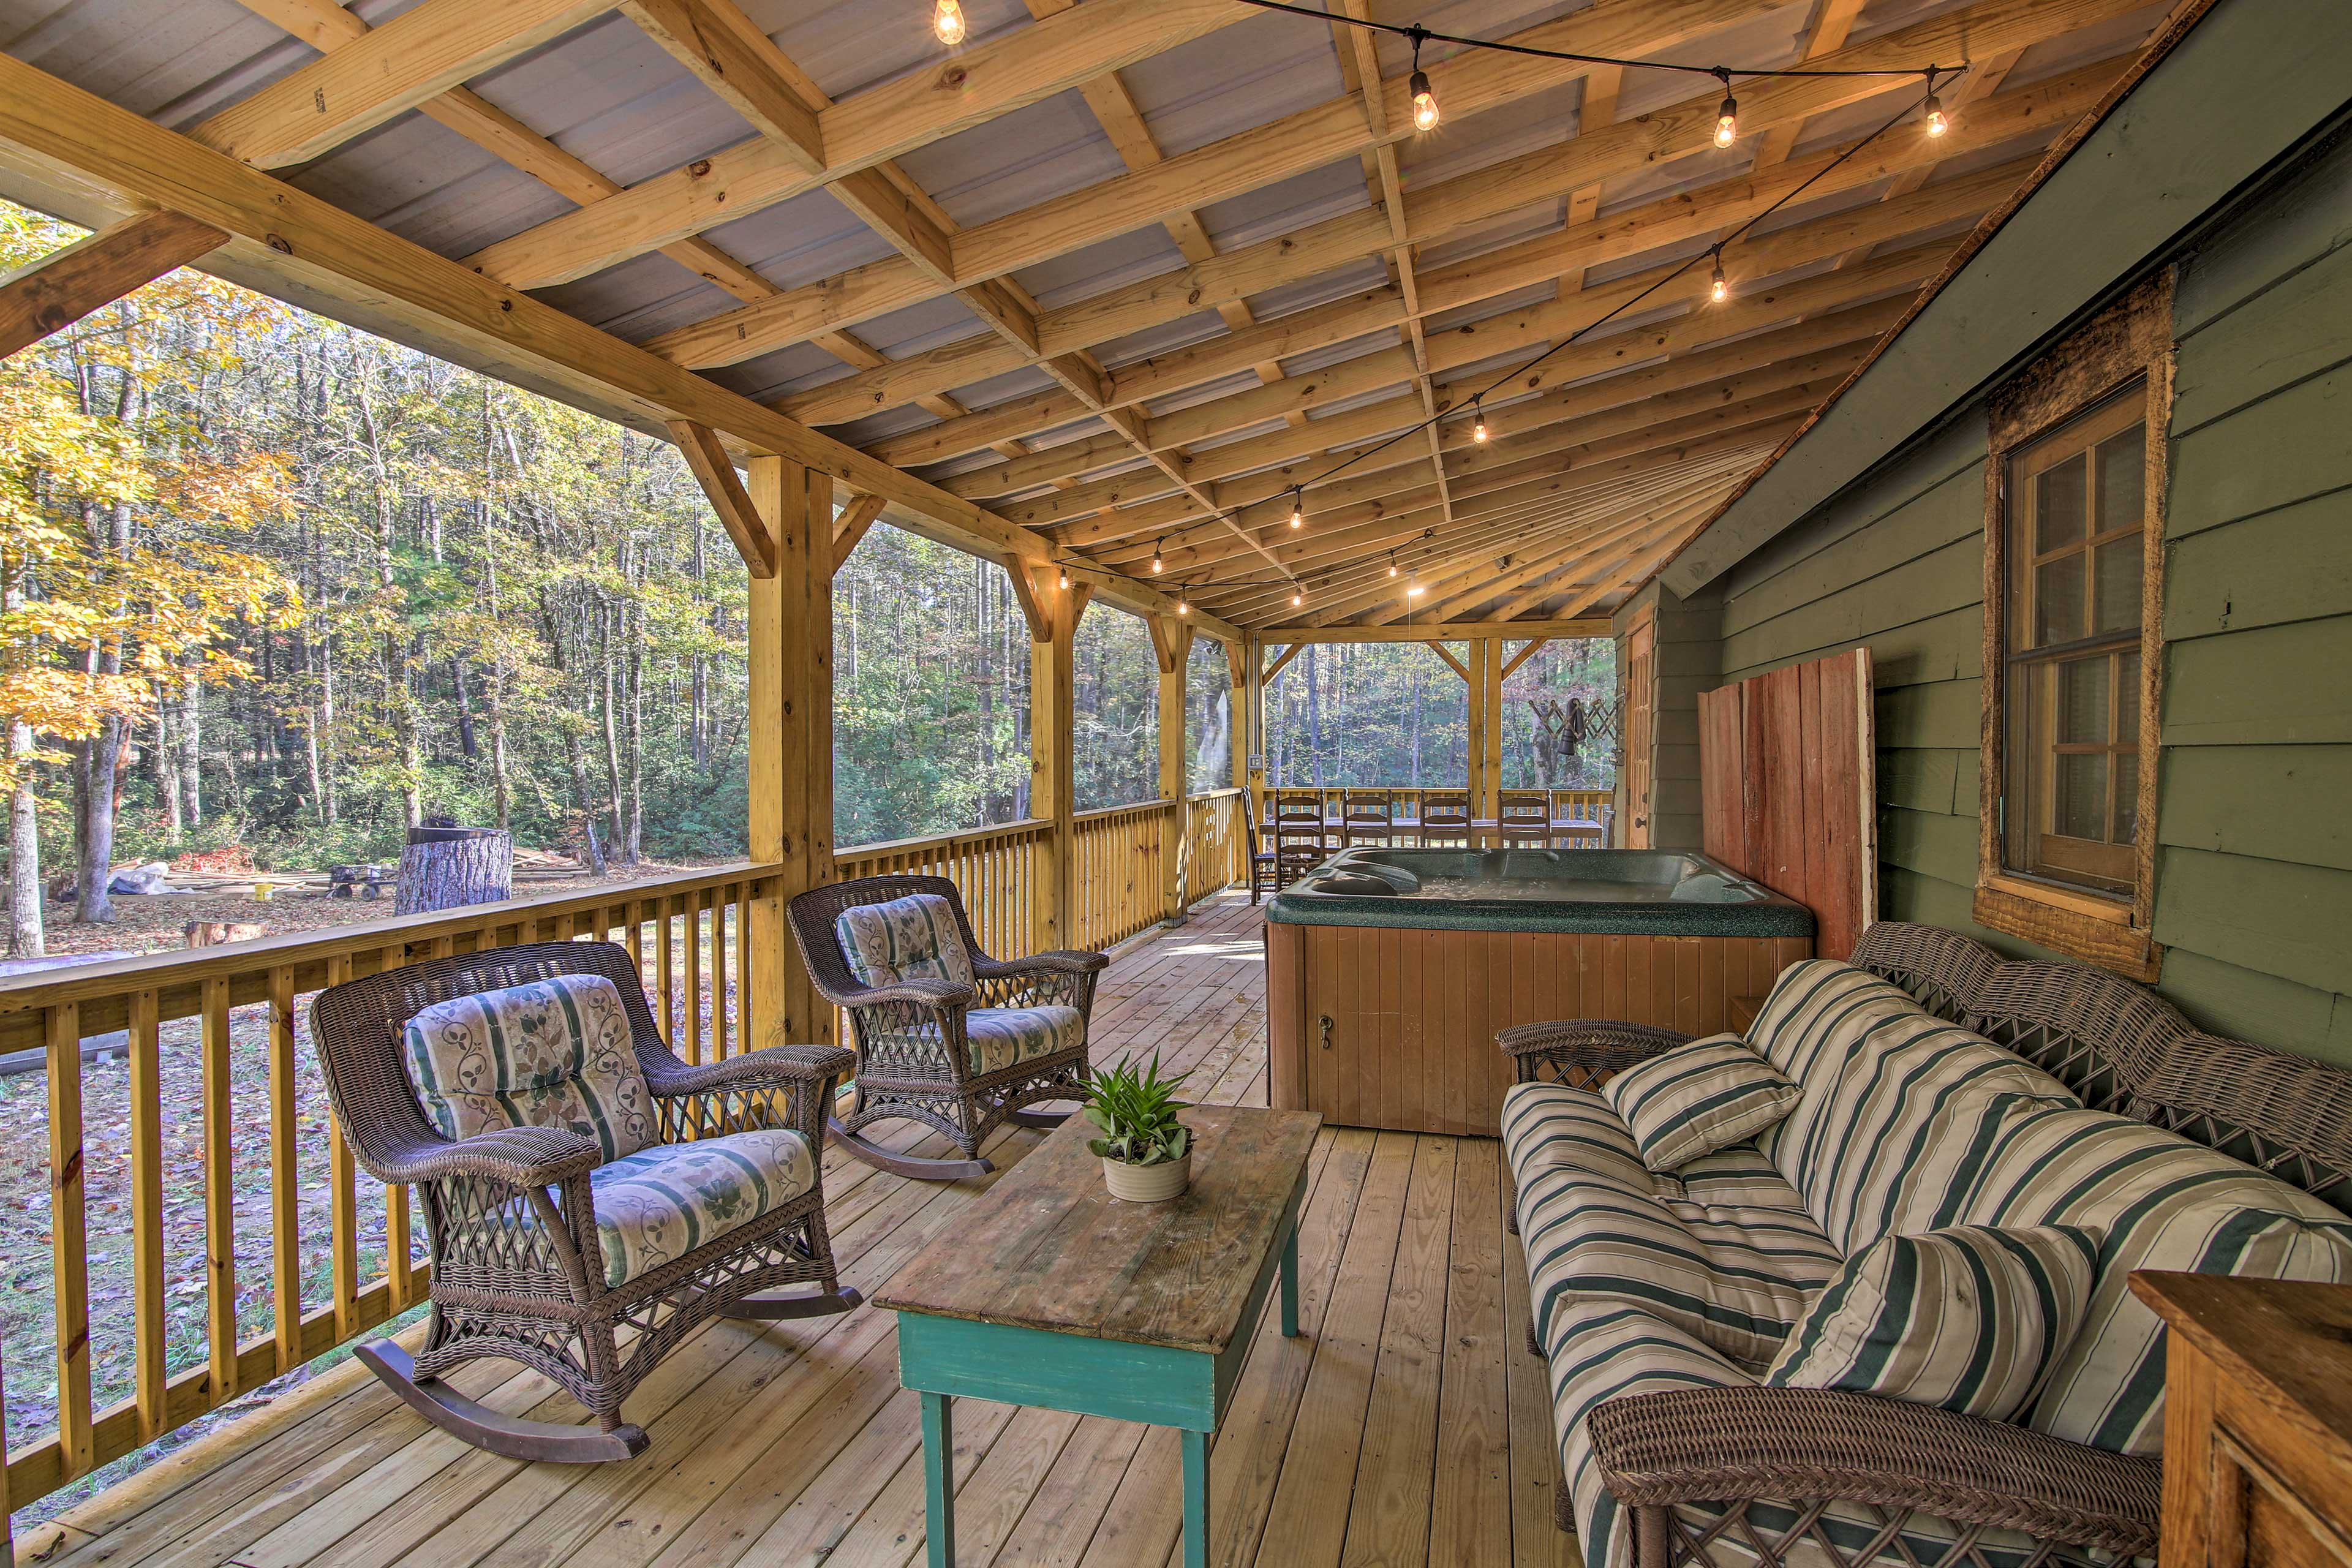 Lounge, relax in the hot tub, or dine on the screened-in porch!